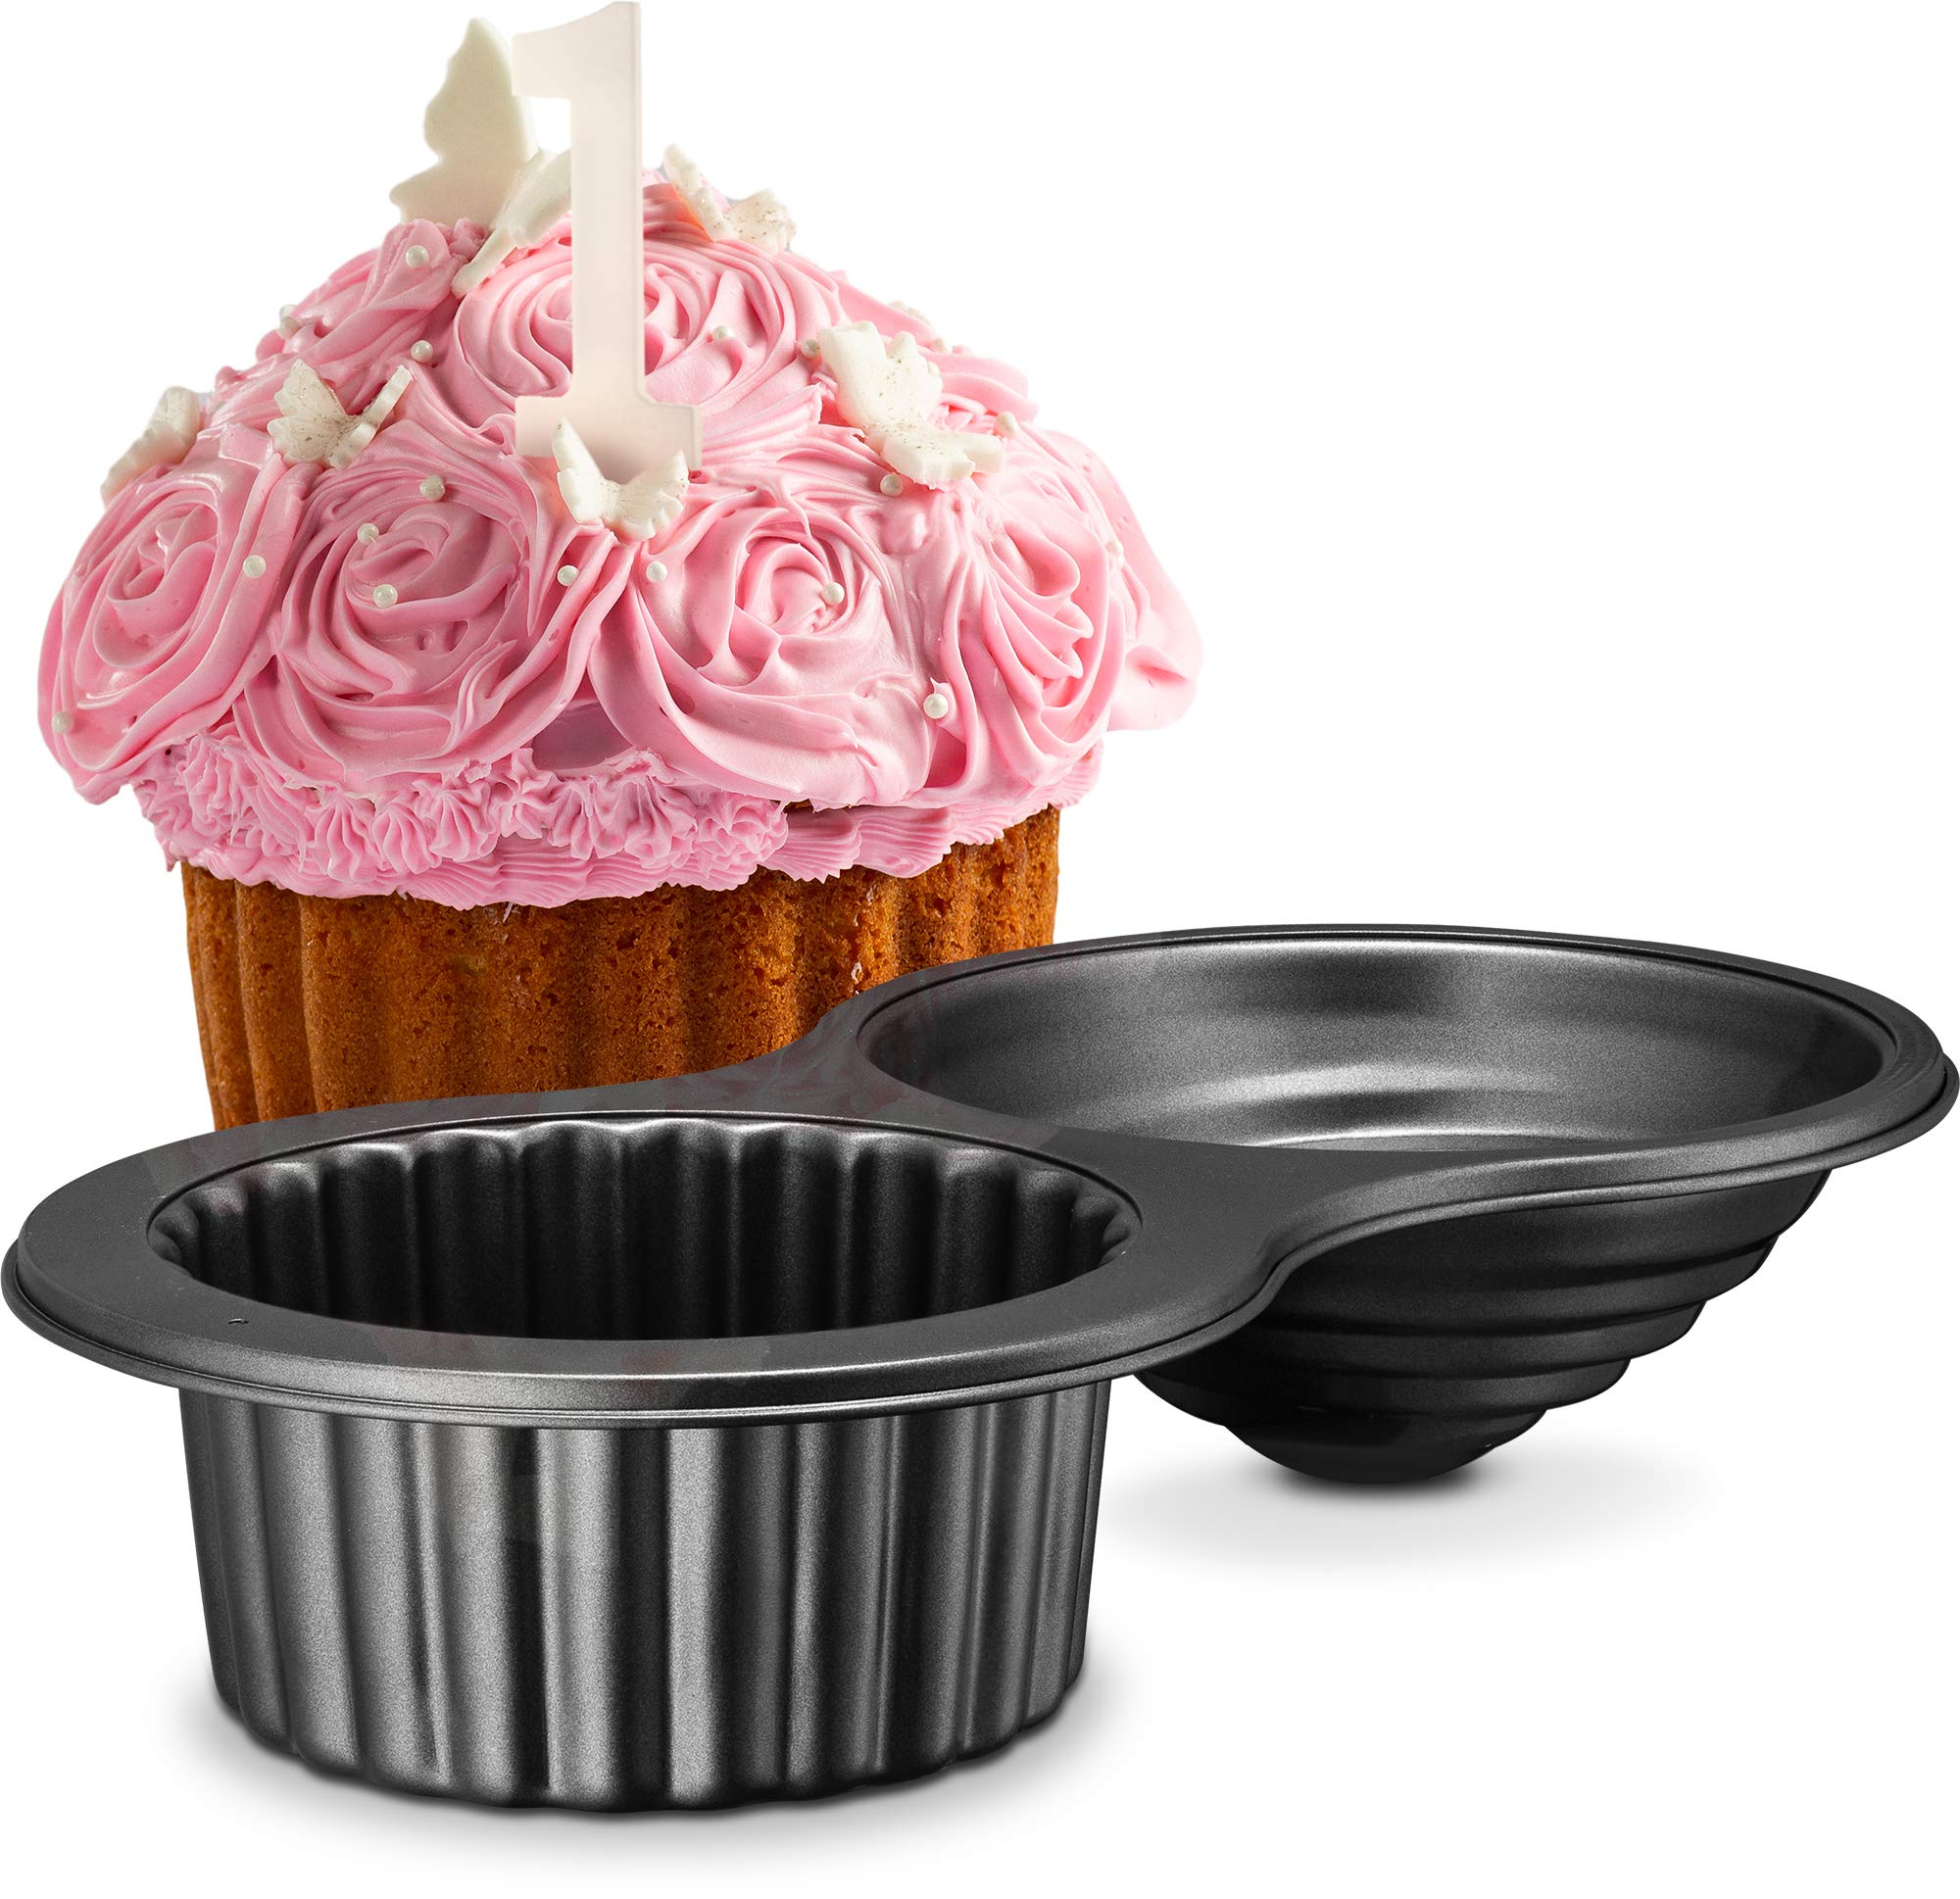 Gourmia GPA9395 Giant Cupcake Pan - Double Sided Two Half Design with Swirl Top Mold - Premium Steel Cake Maker with Non-Stick Coating - Dishwasher Safe by Gourmia (Image #1)